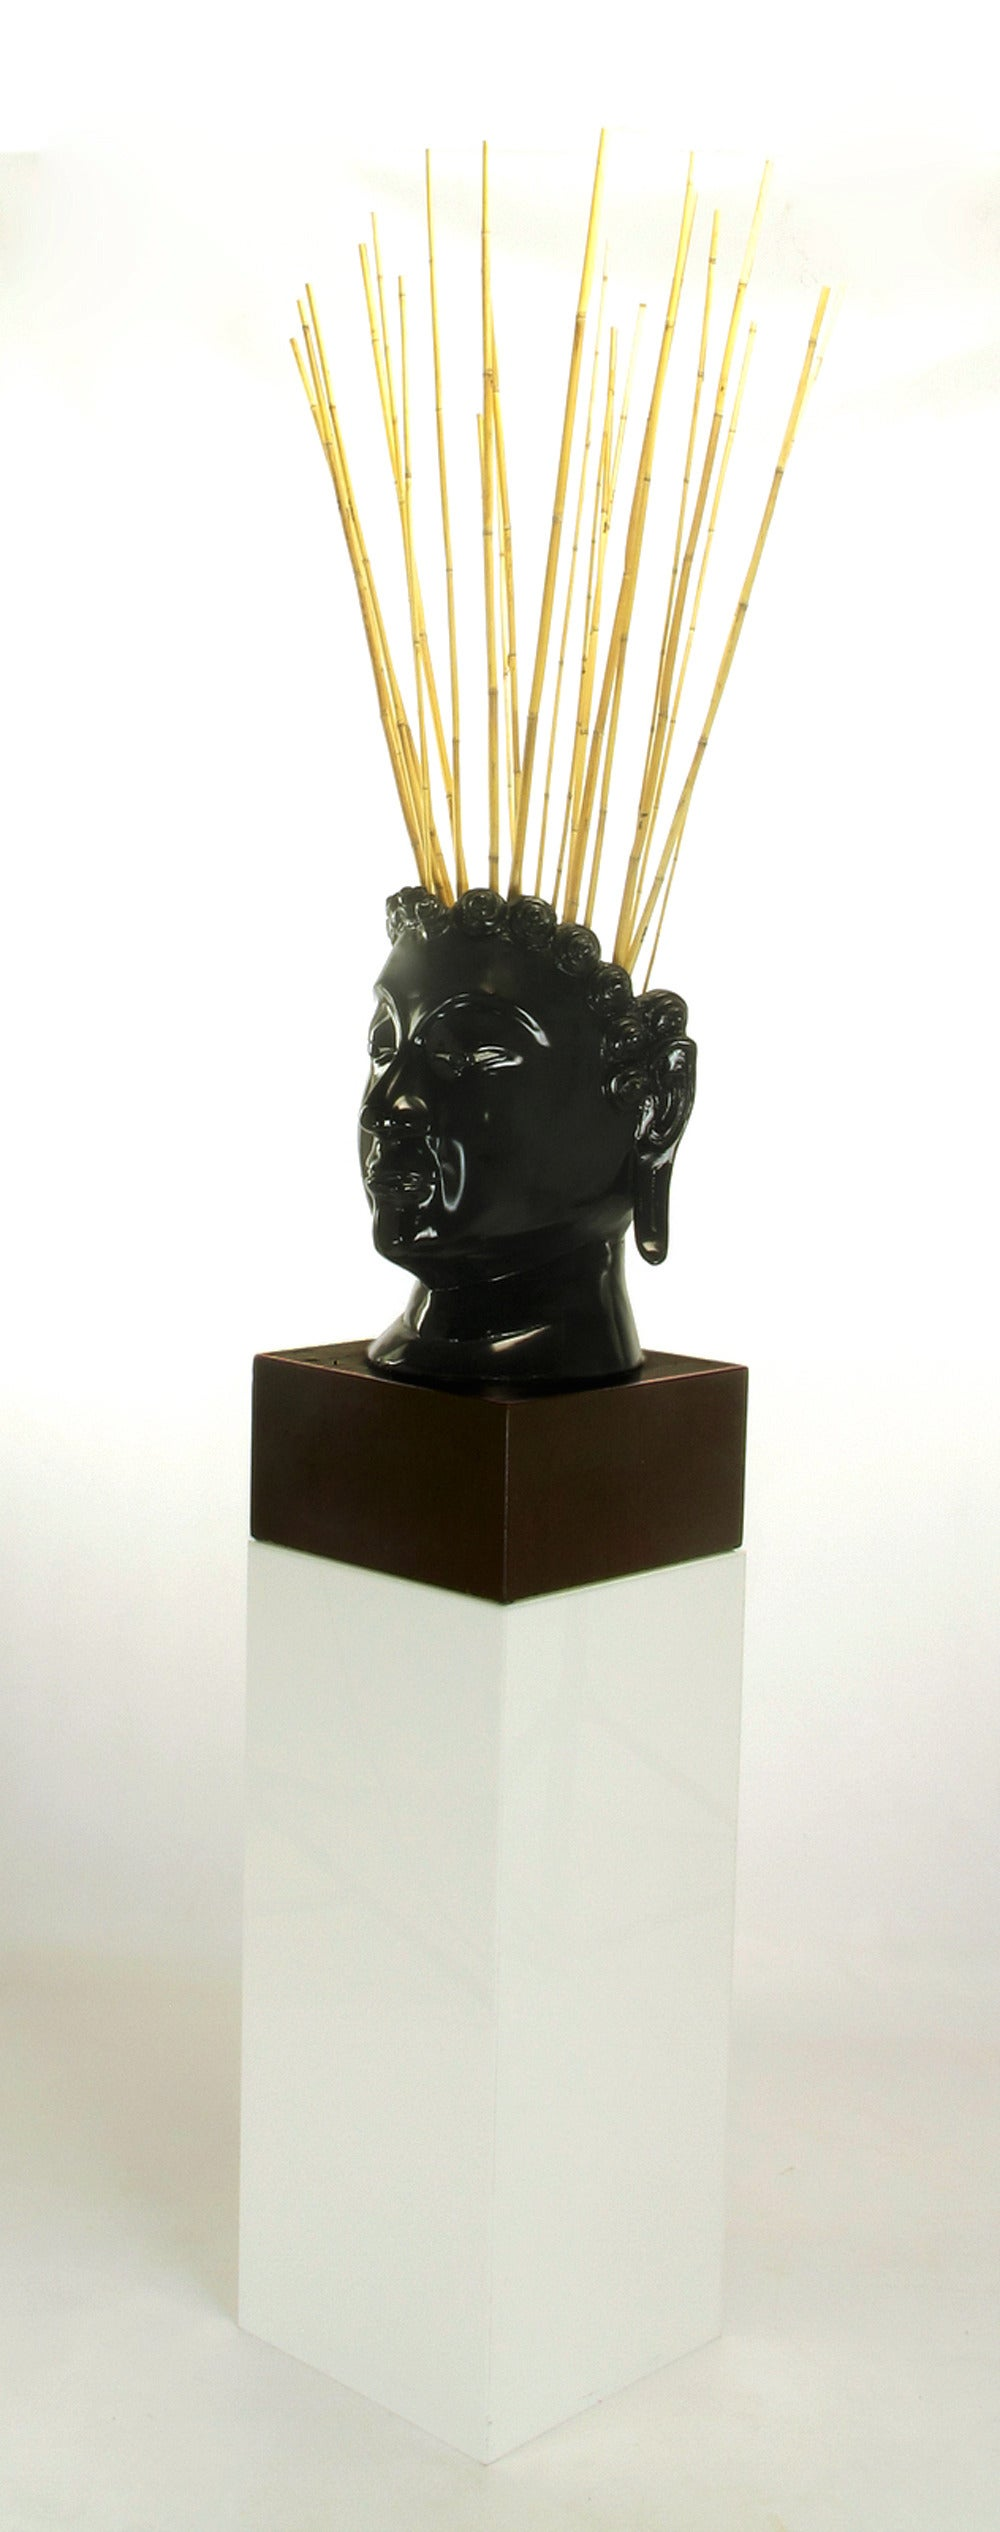 Unknown Buddha-Form Mahogany and Black Lacquer Sculpture on White Lucite Pedestal For Sale